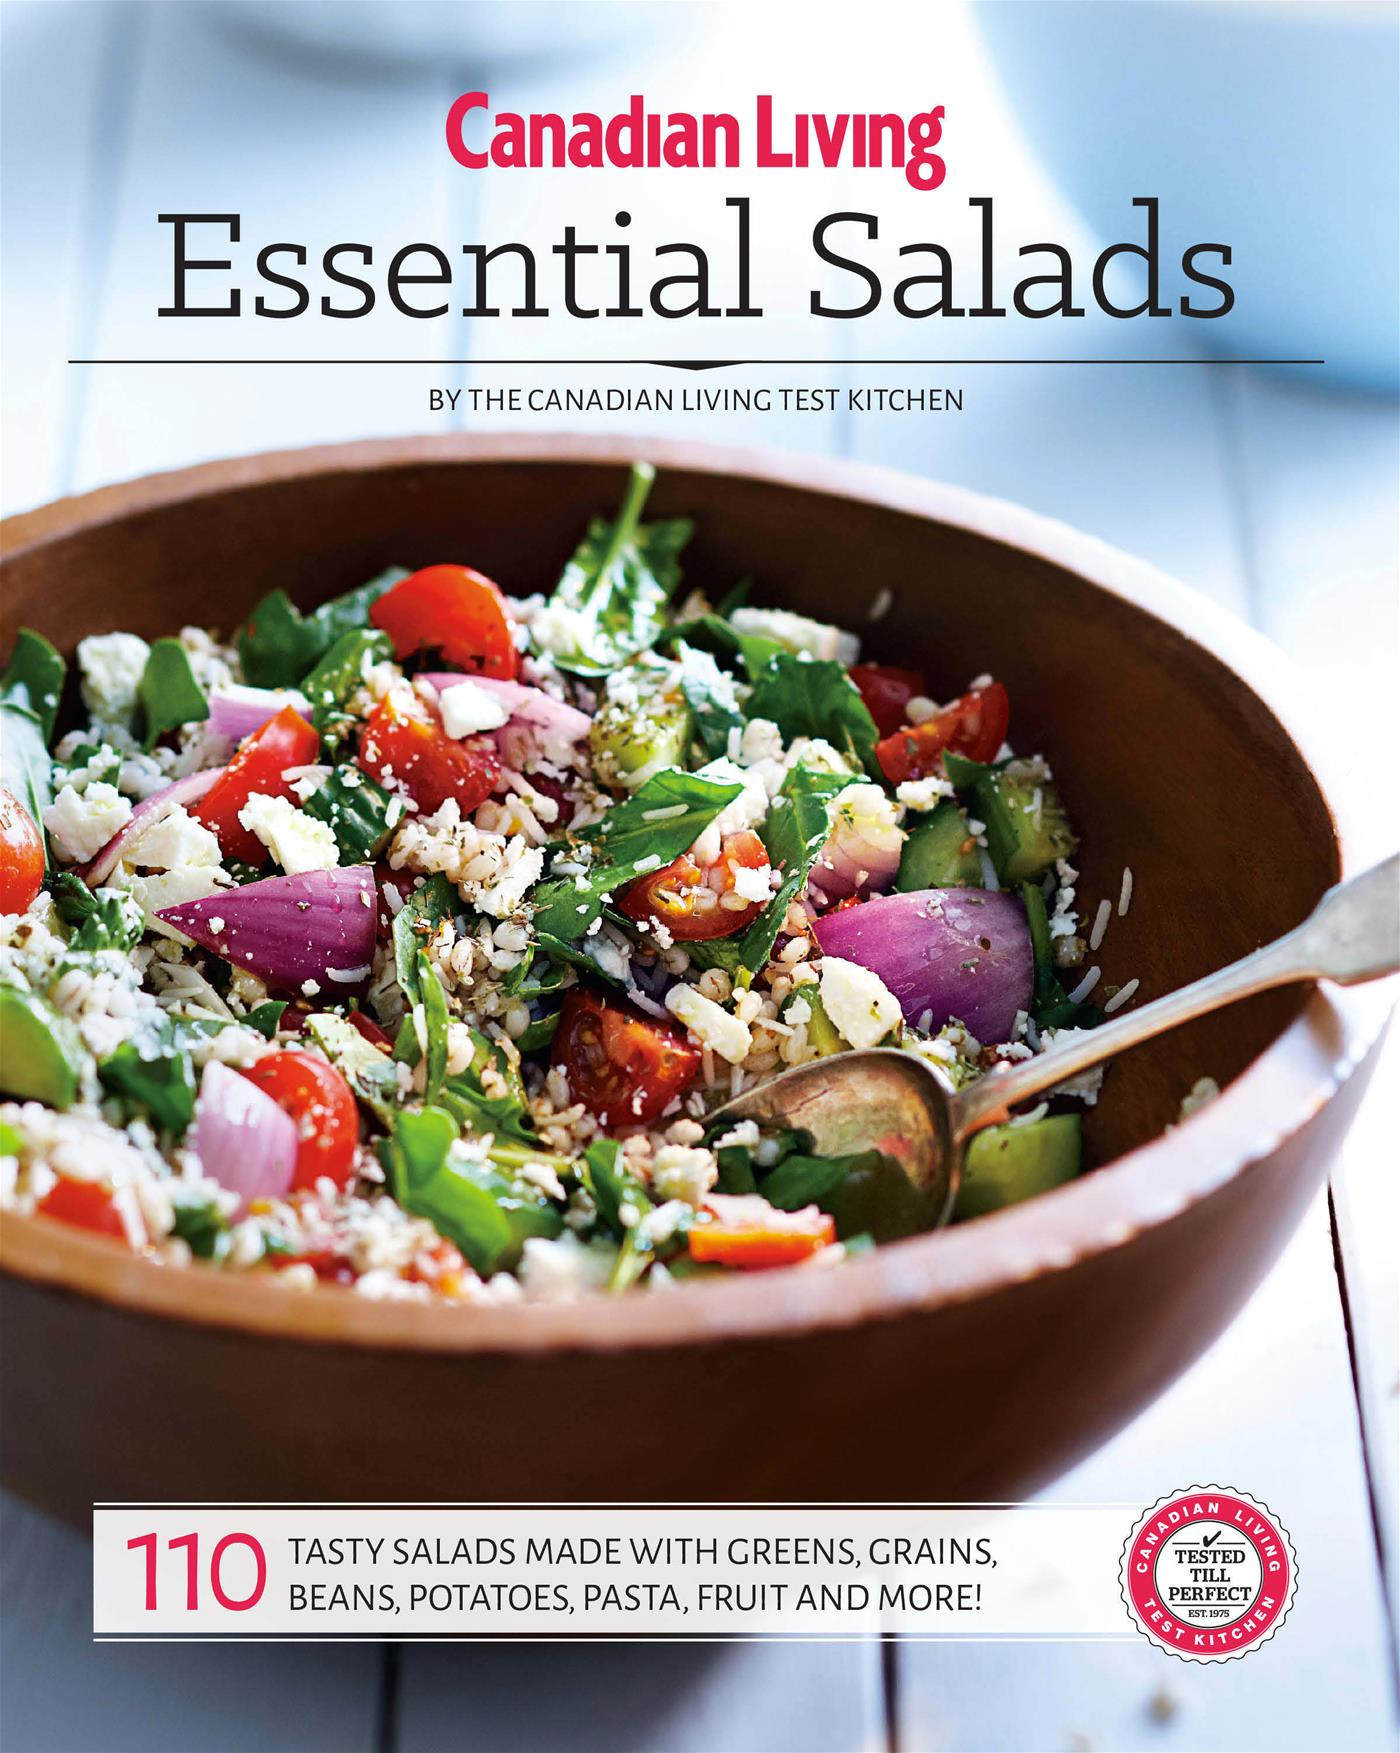 150 Essentials Salads